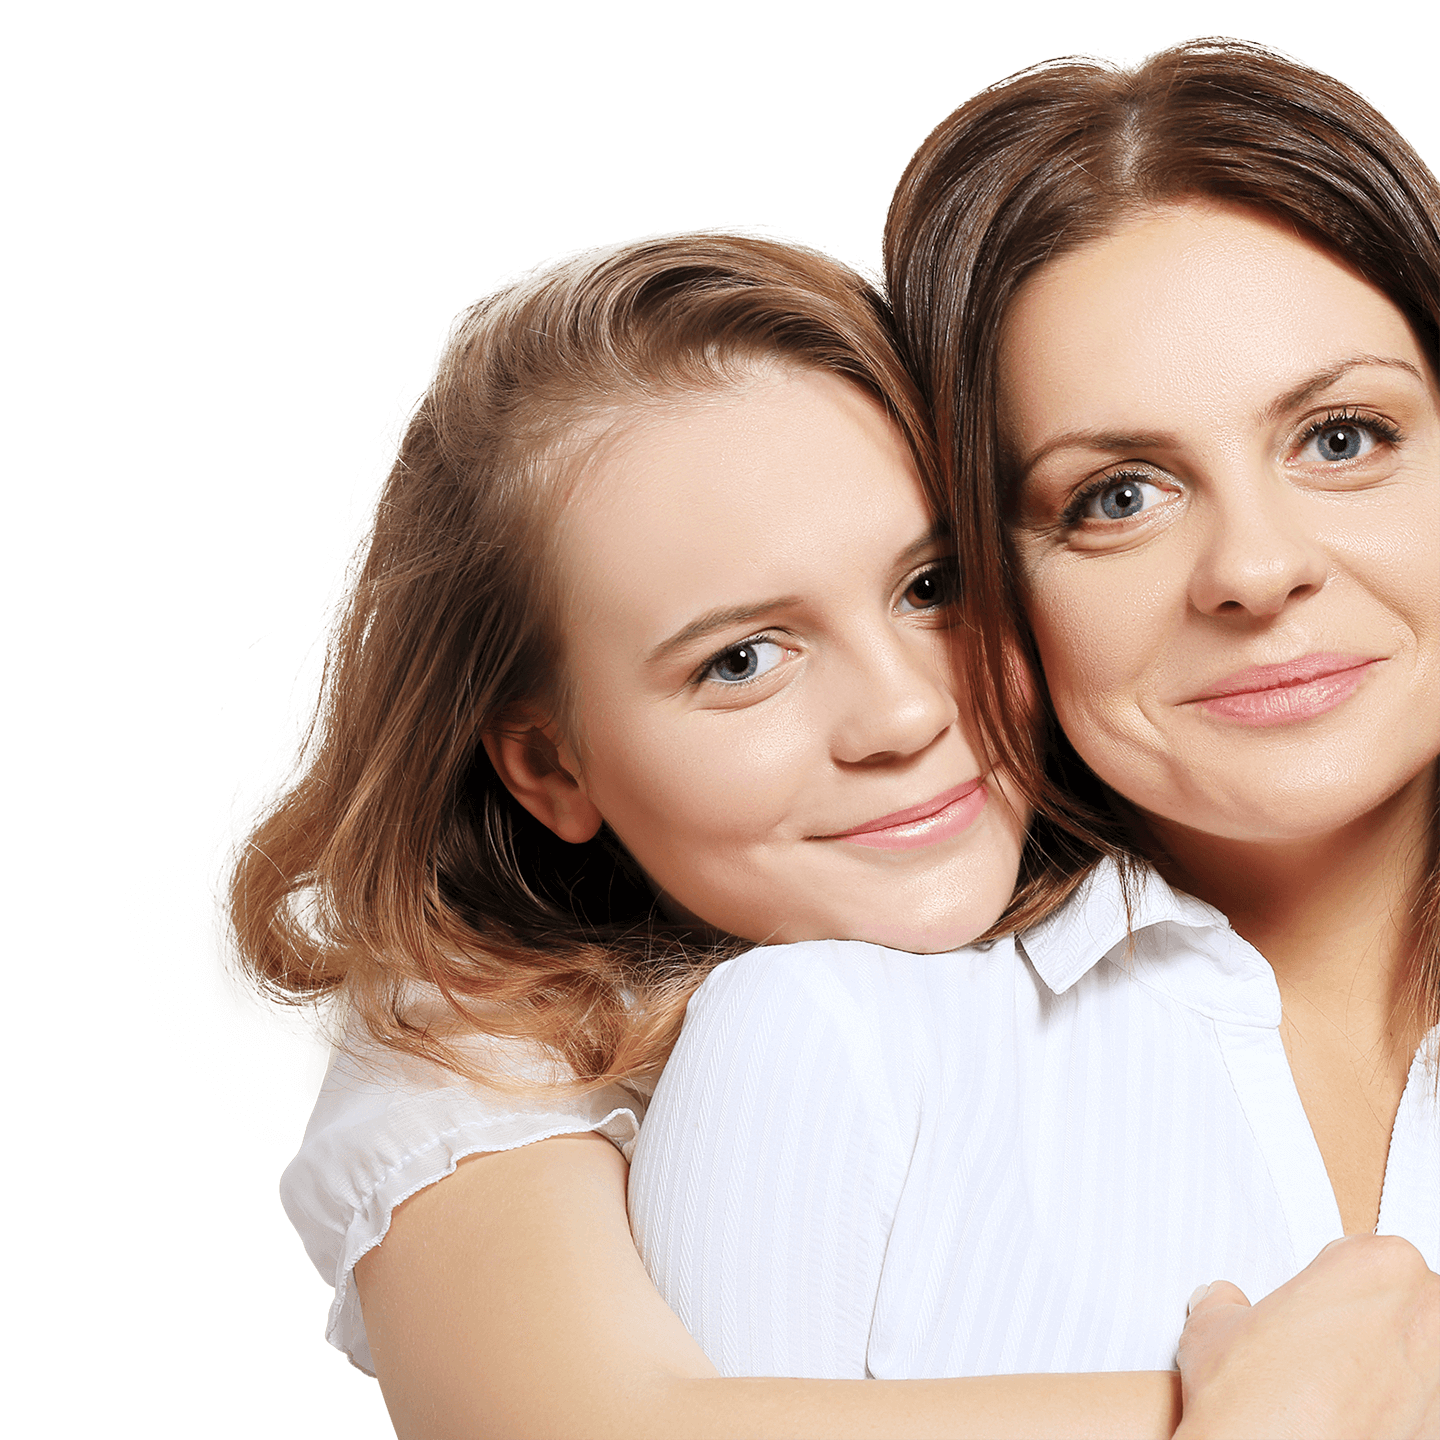 How to approach the 'Shaving Chat' with your daughter